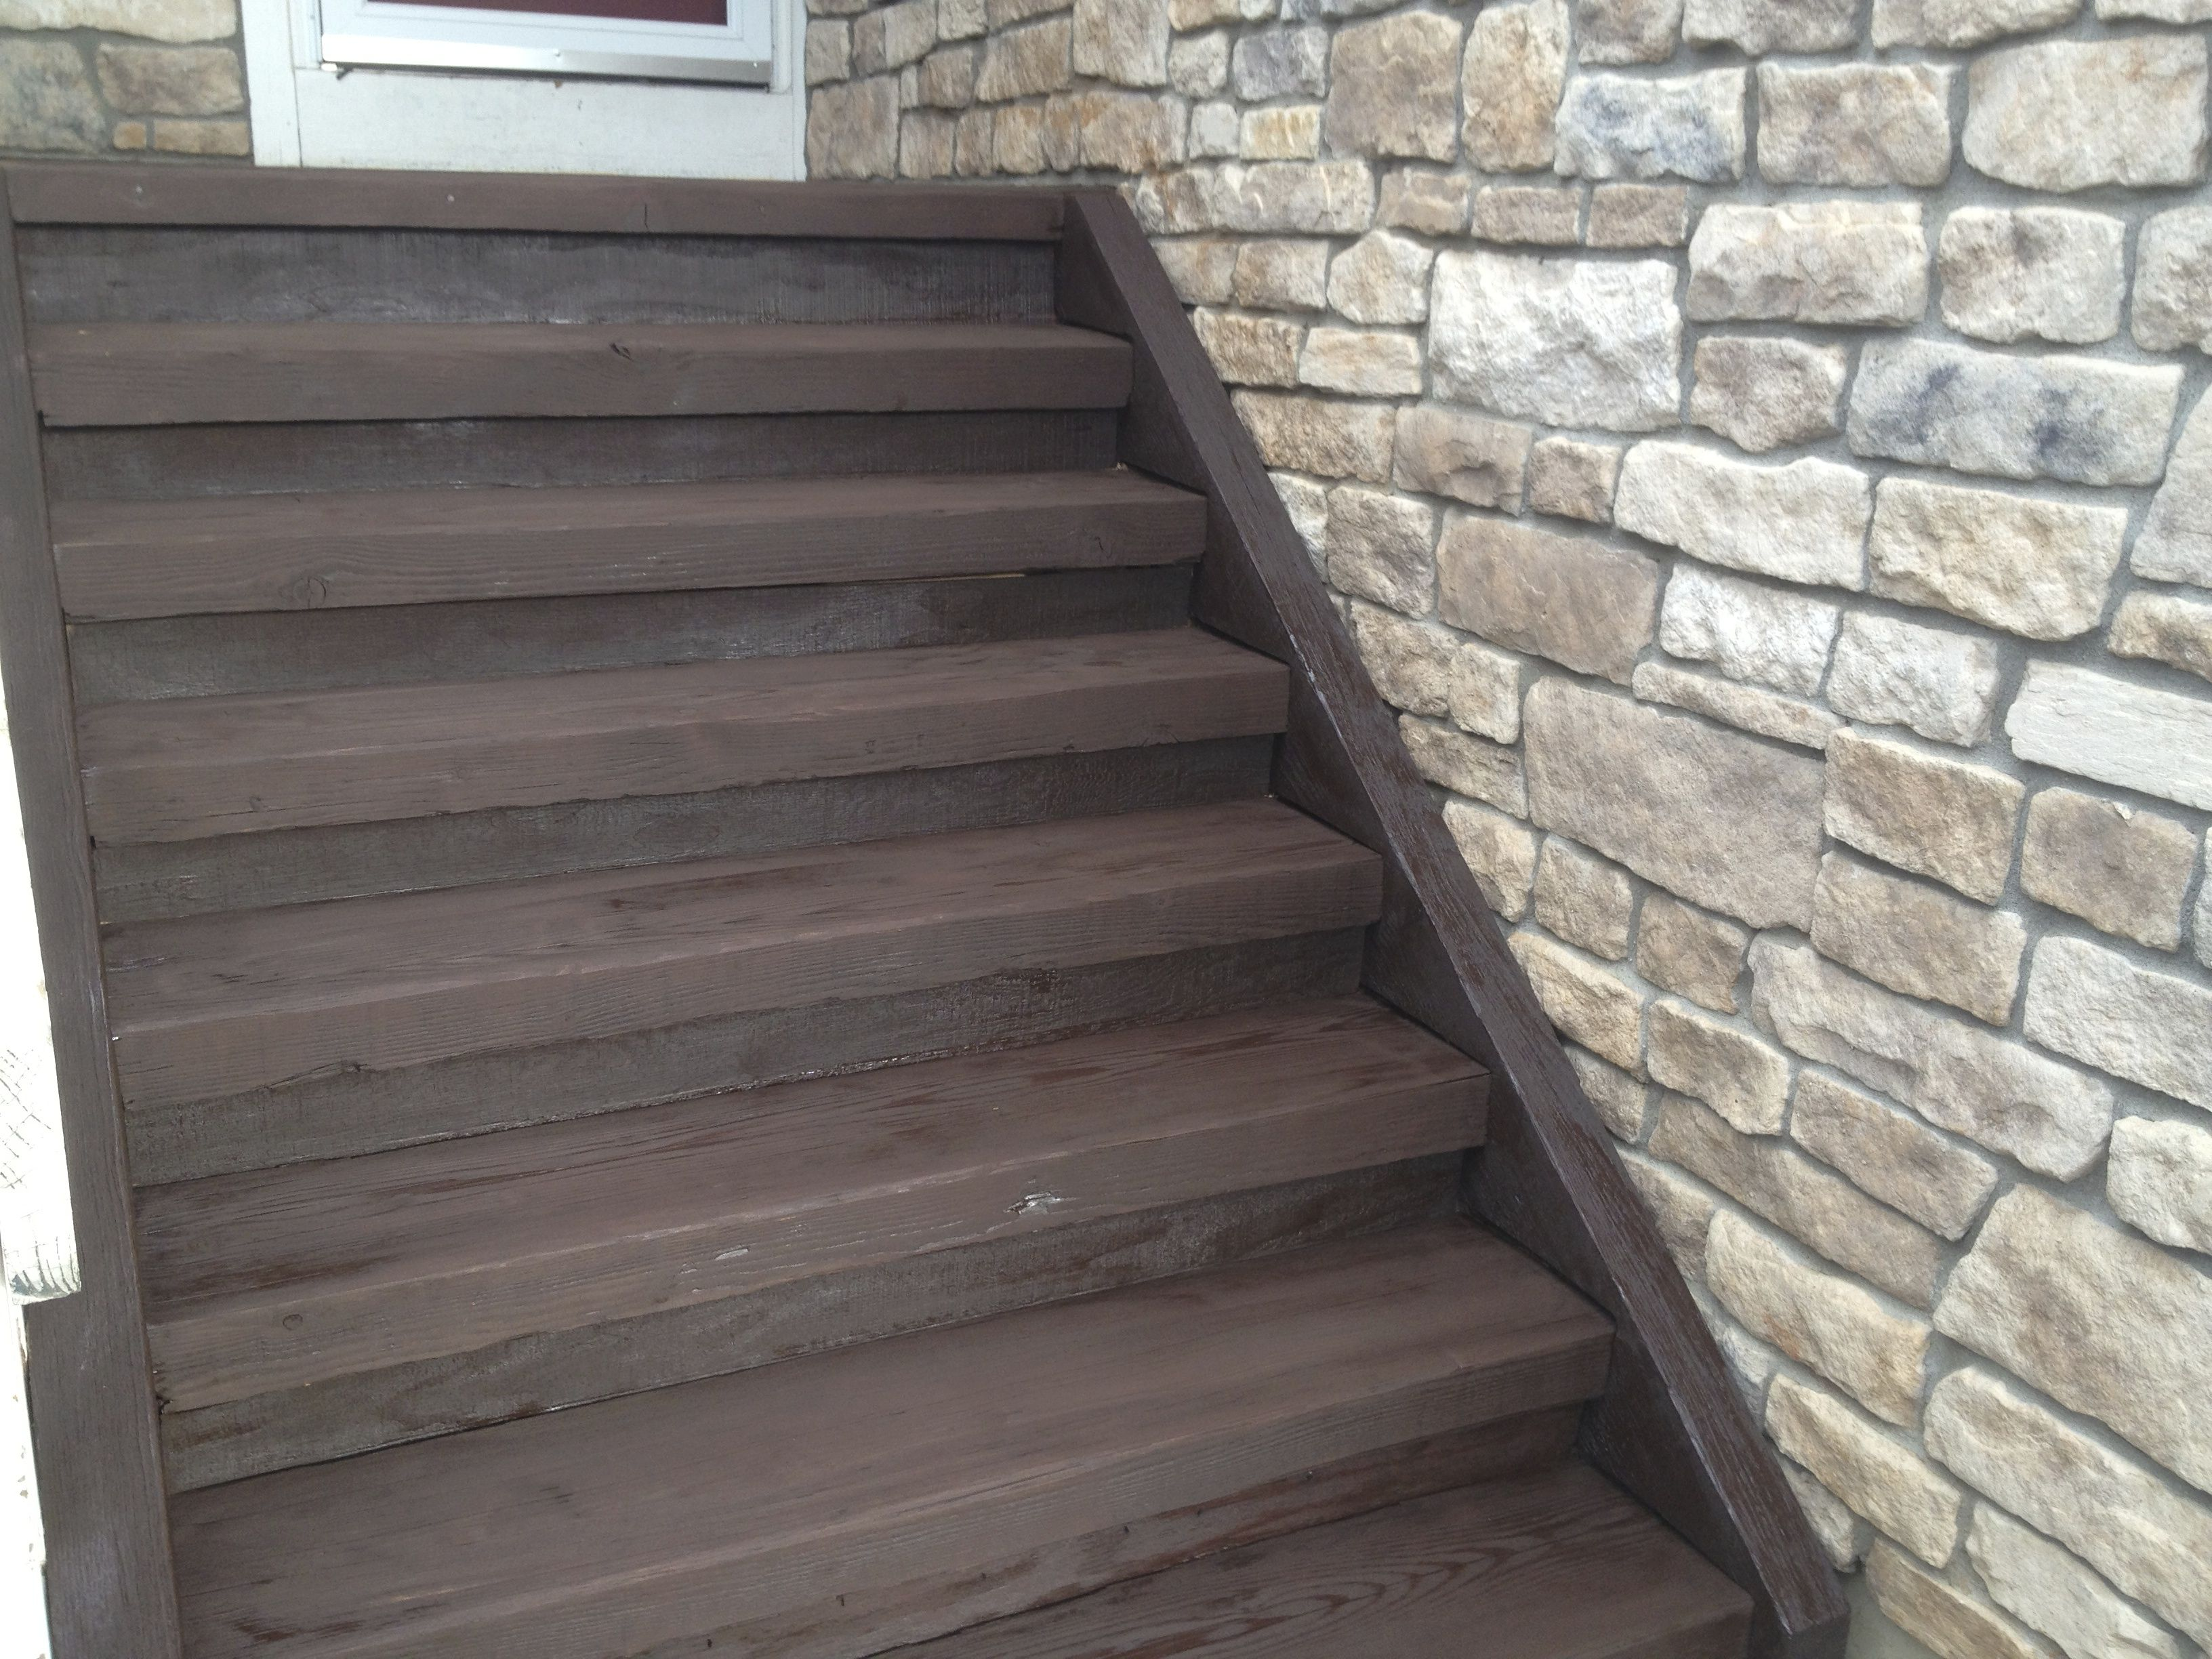 Cabot Deck Stain In Semi Solid Cordovan Brown Cedar Deck